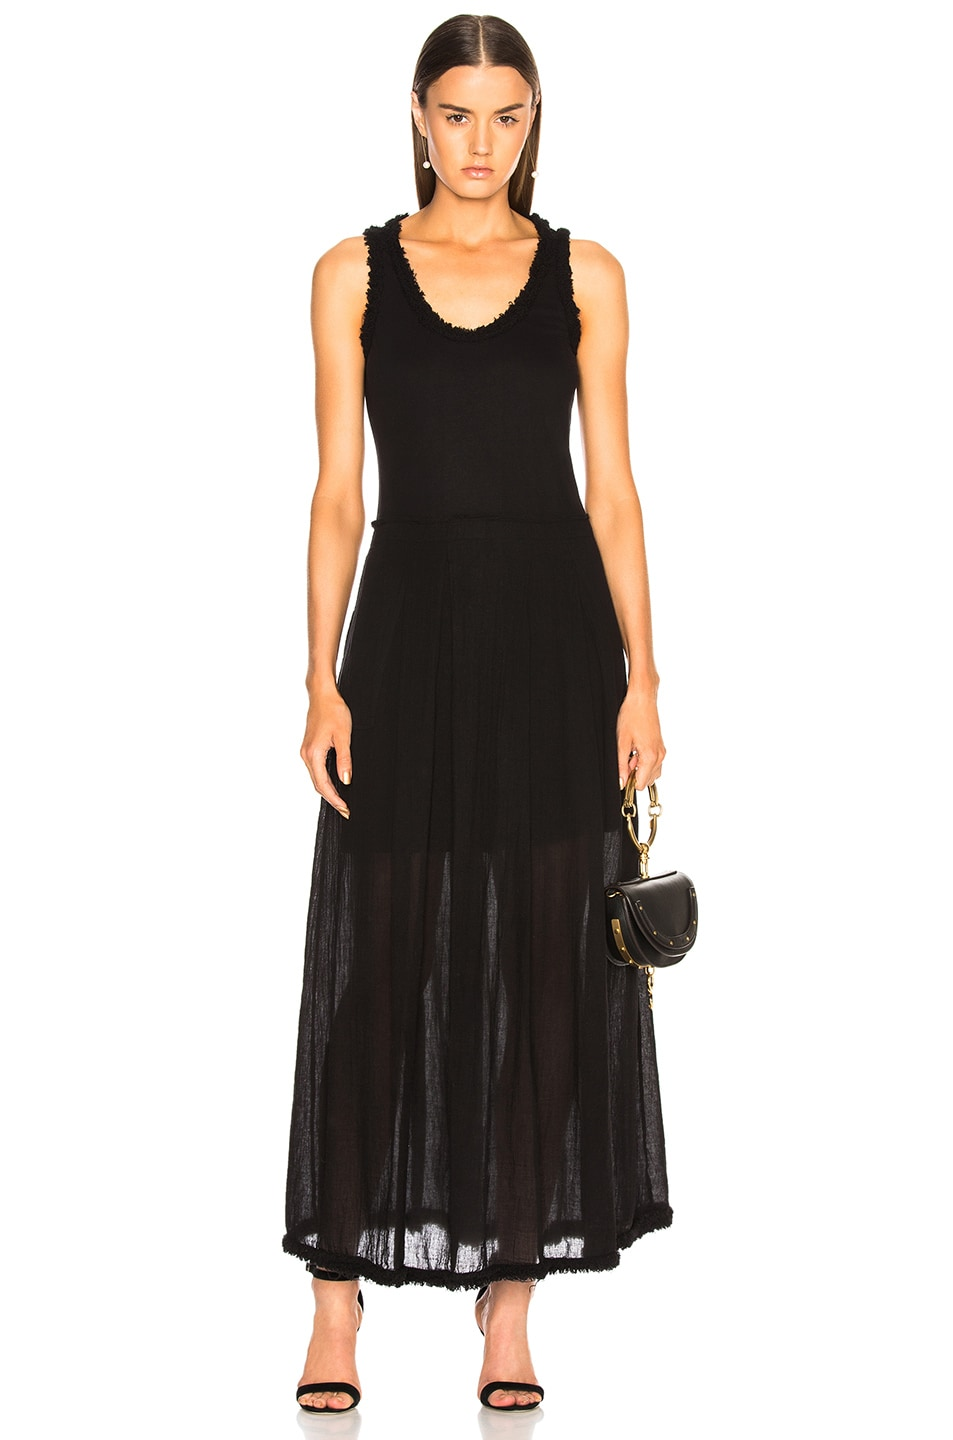 Raquel Allegra Pleated Medley Dress in Black